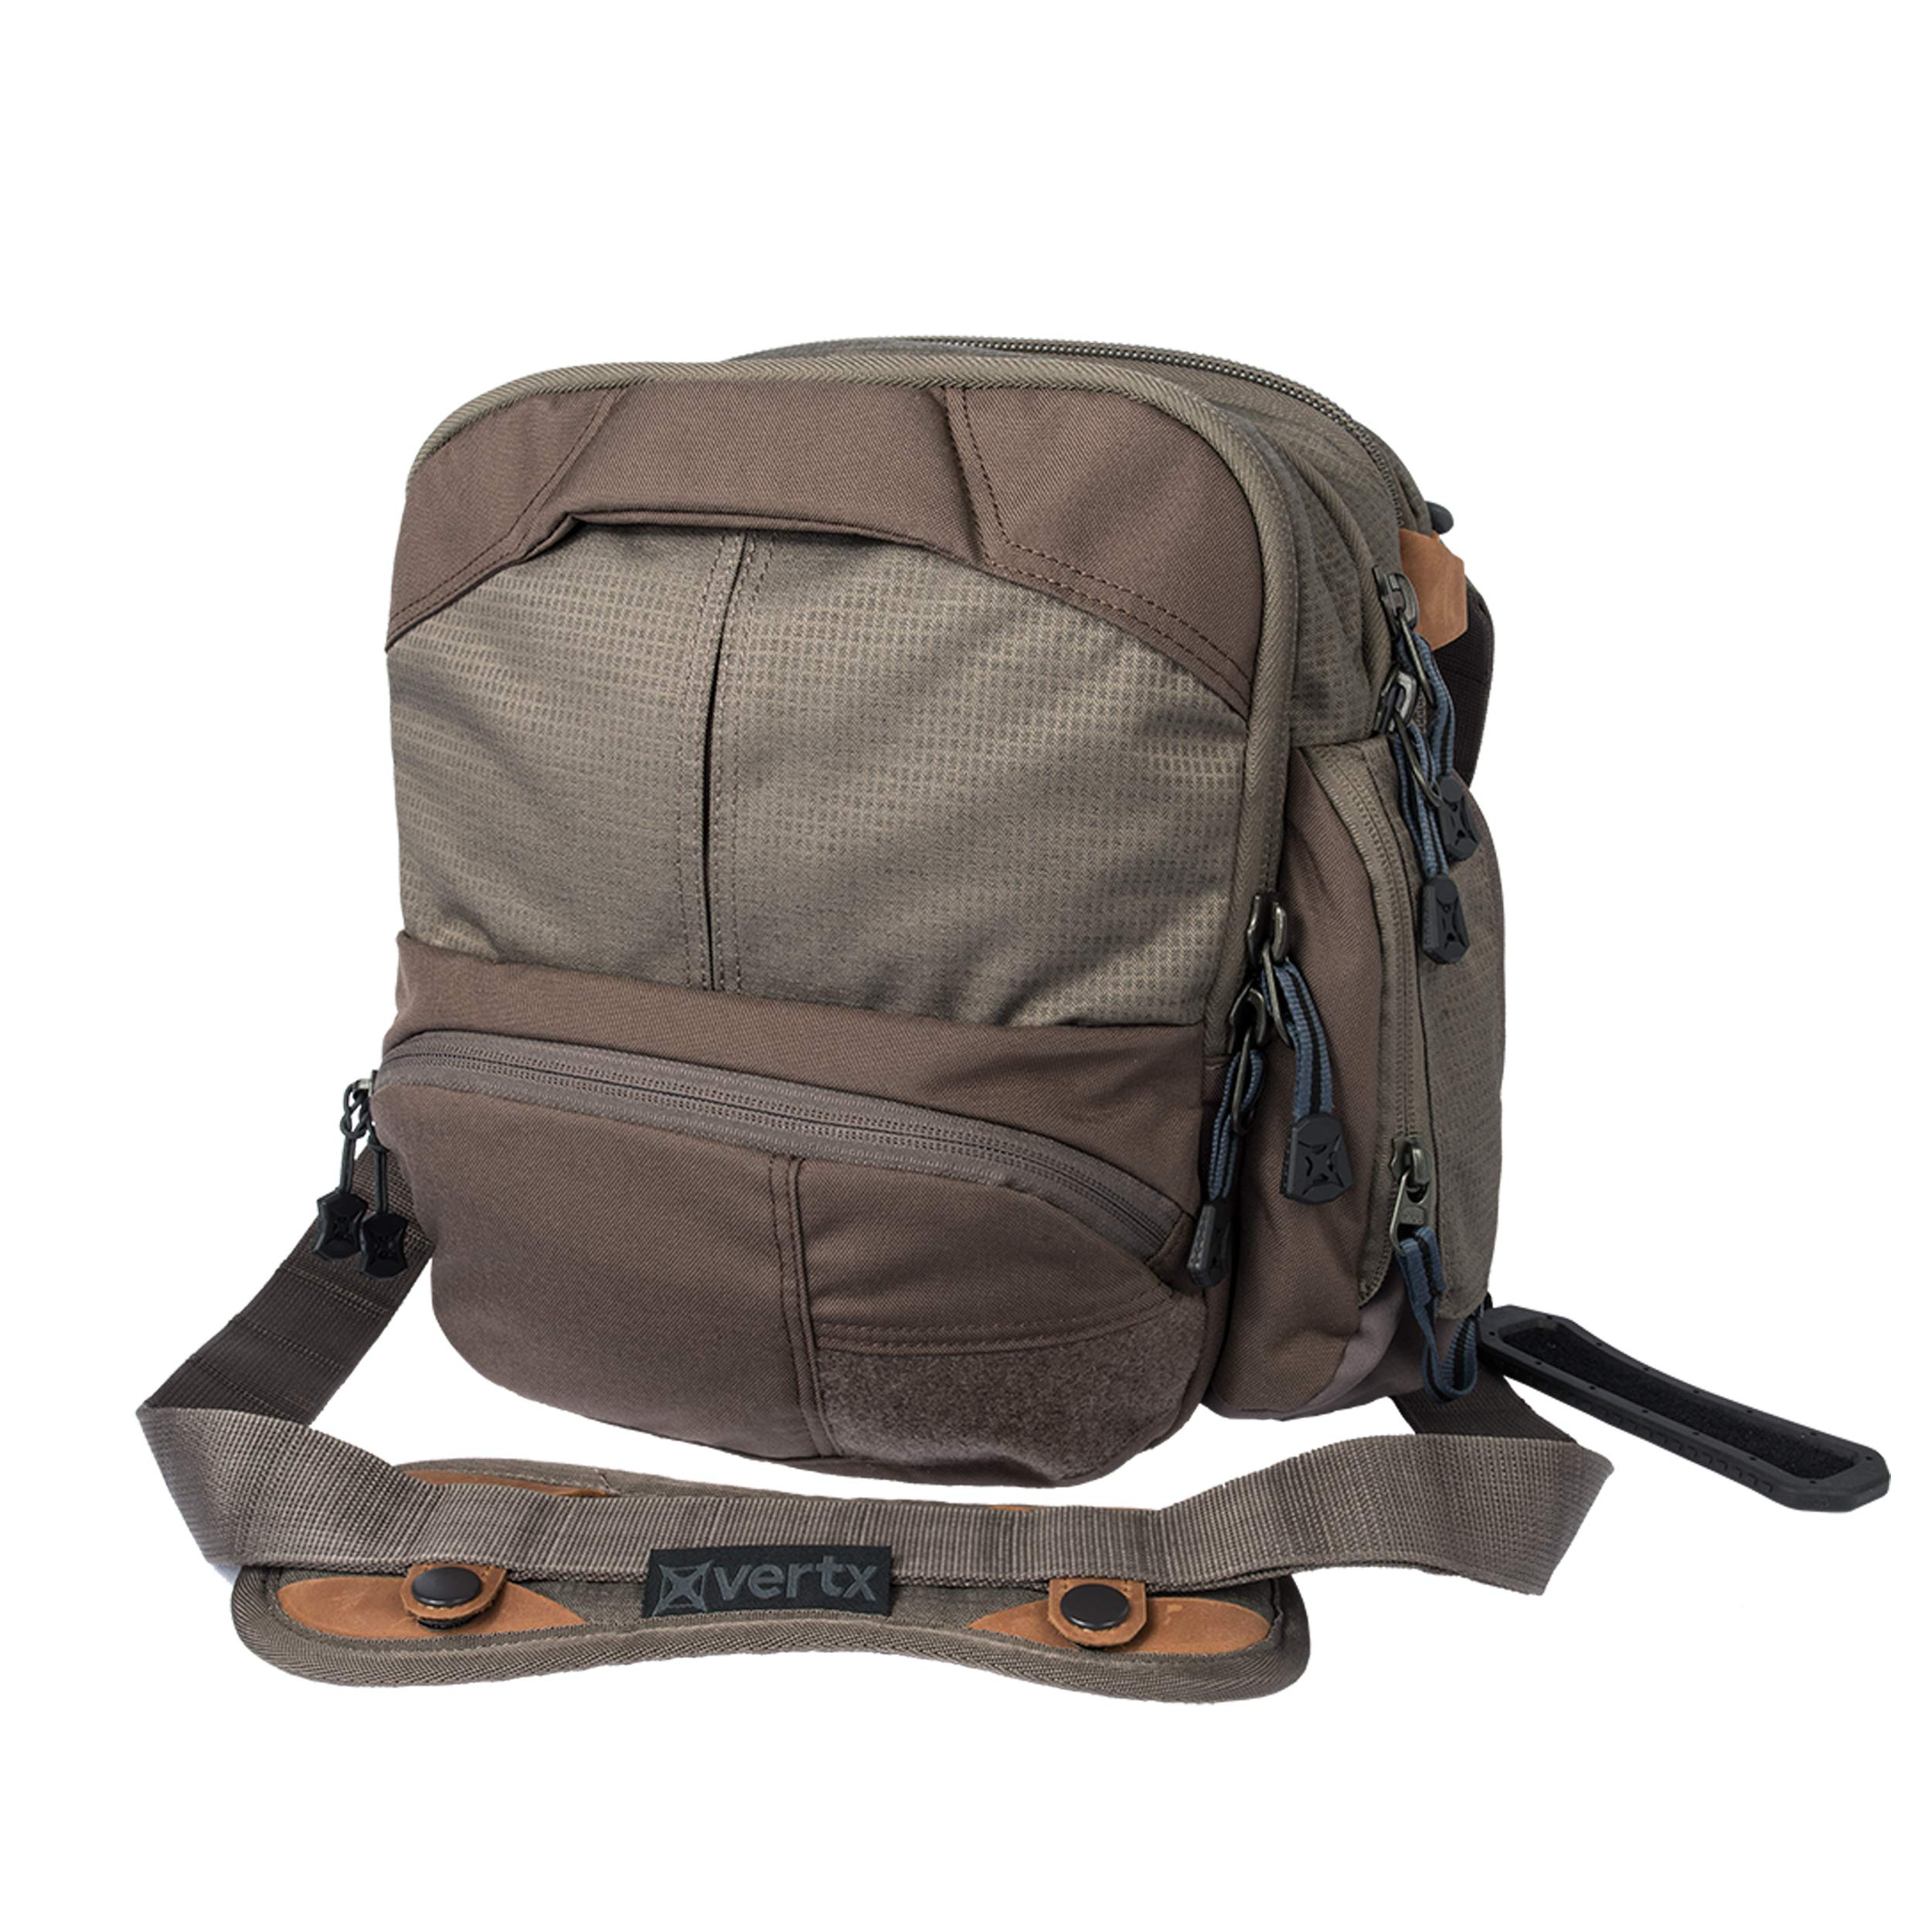 Vertx EDC Essential Tactical Bag, One Size